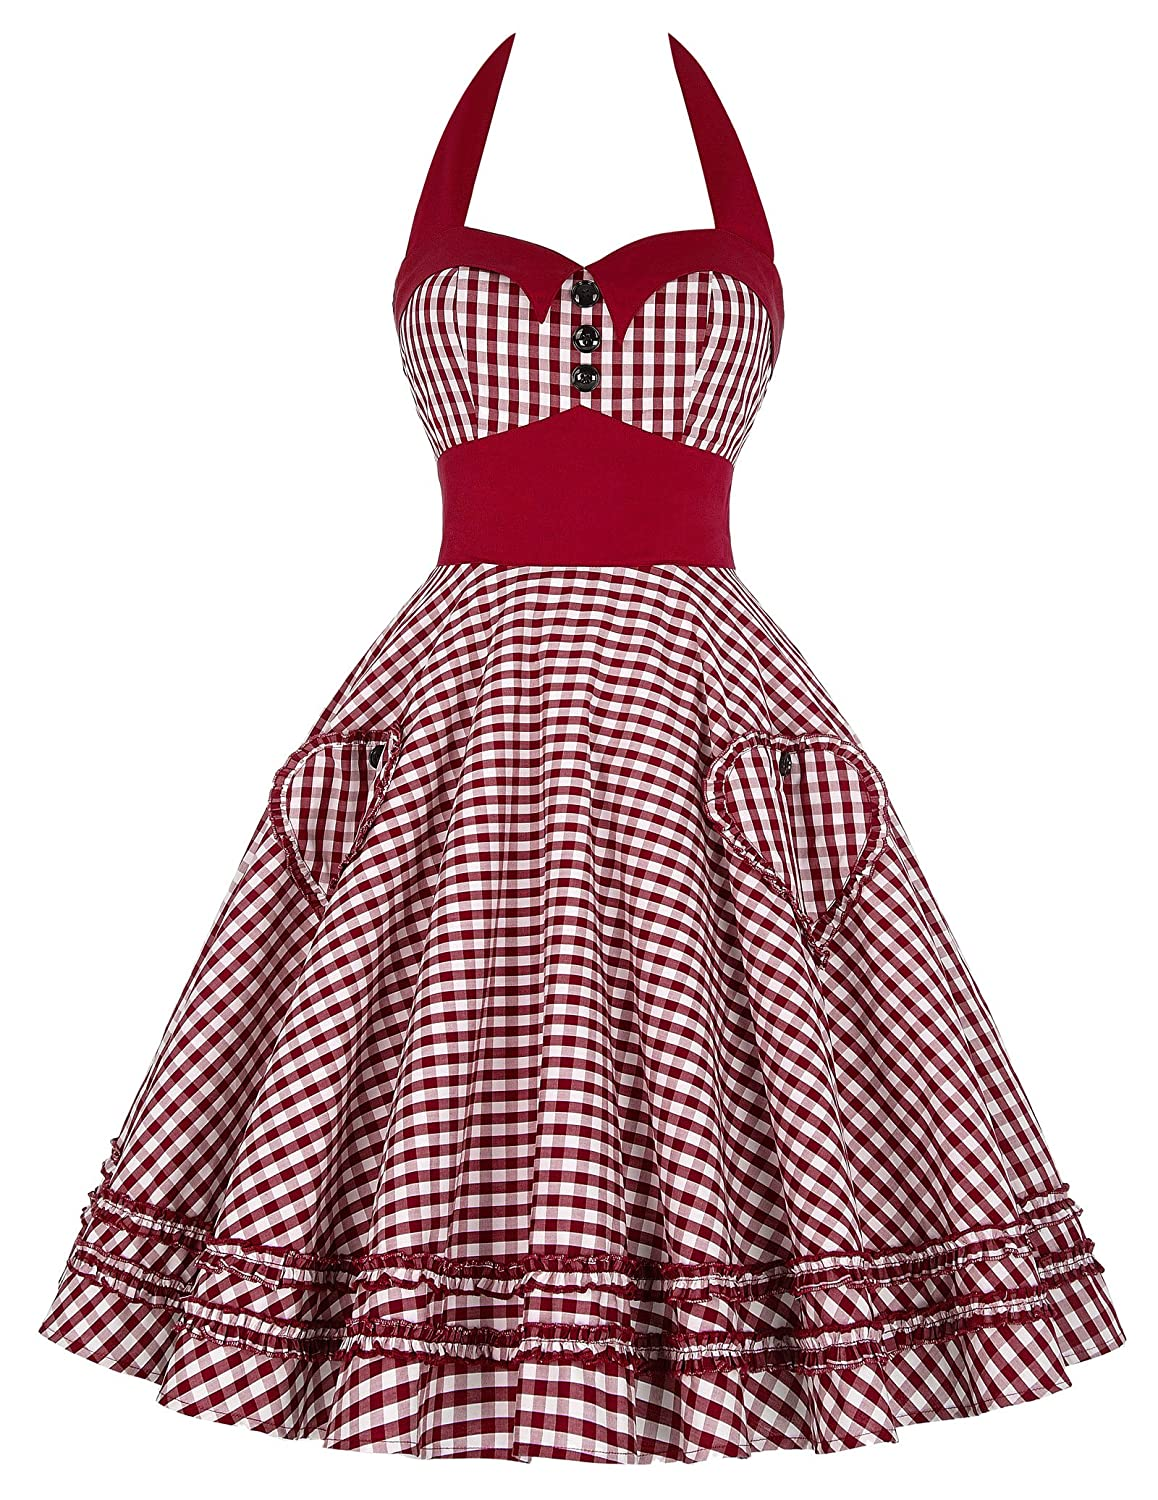 Vintage Polka Dot Dresses – Ditsy 50s Prints GRACE KARIN Womens Halter Neck Vintage Cocktail Dress JS6091 $28.99 AT vintagedancer.com